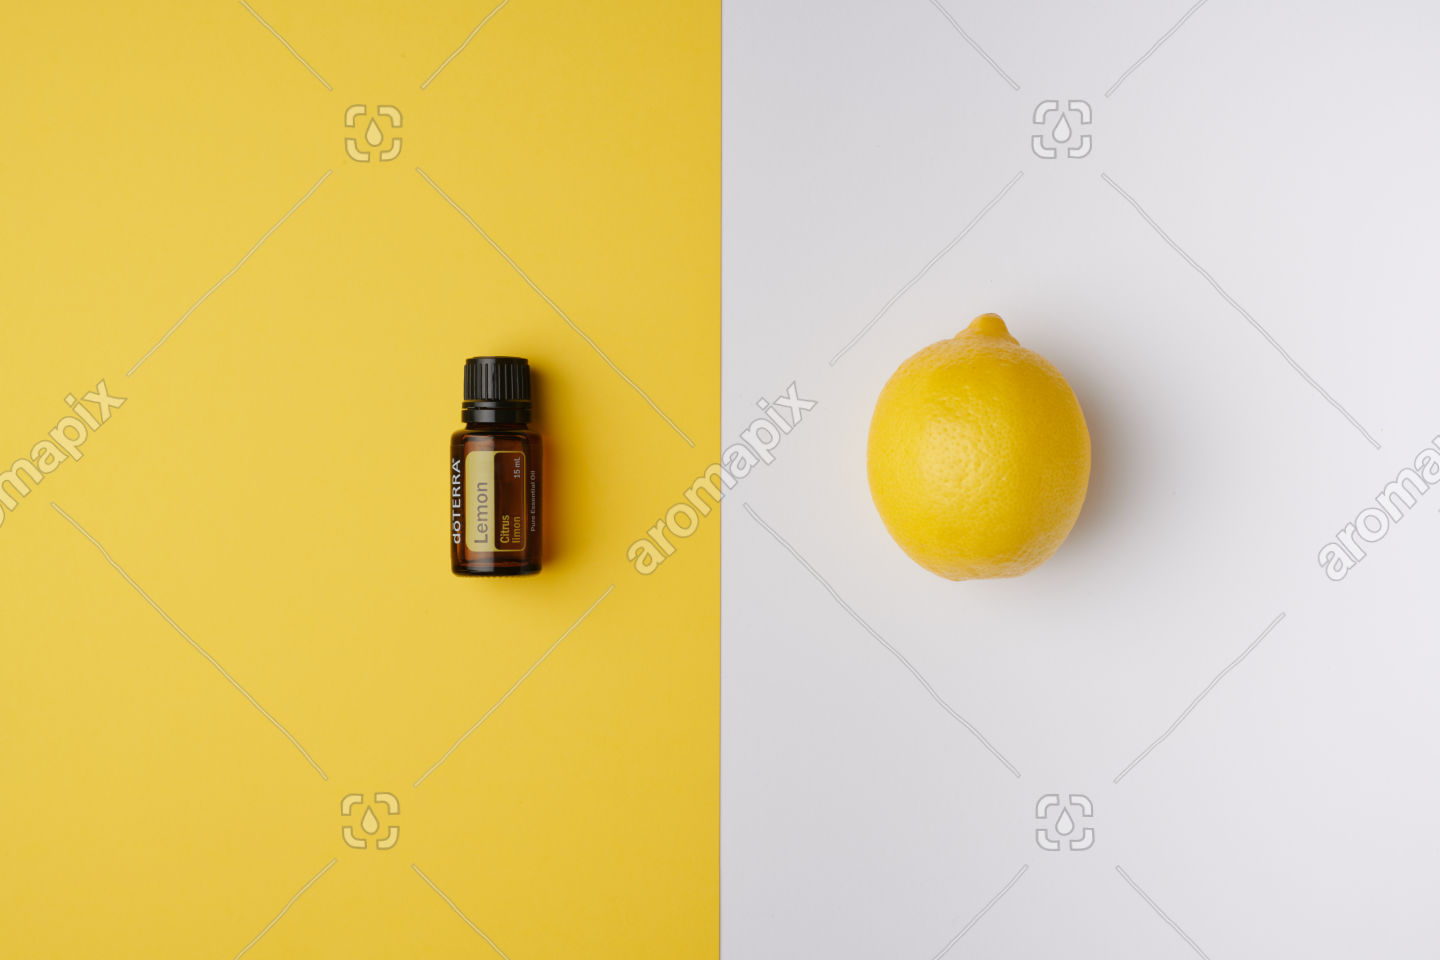 doTERRA Lemon product and fruit on yellow and white background